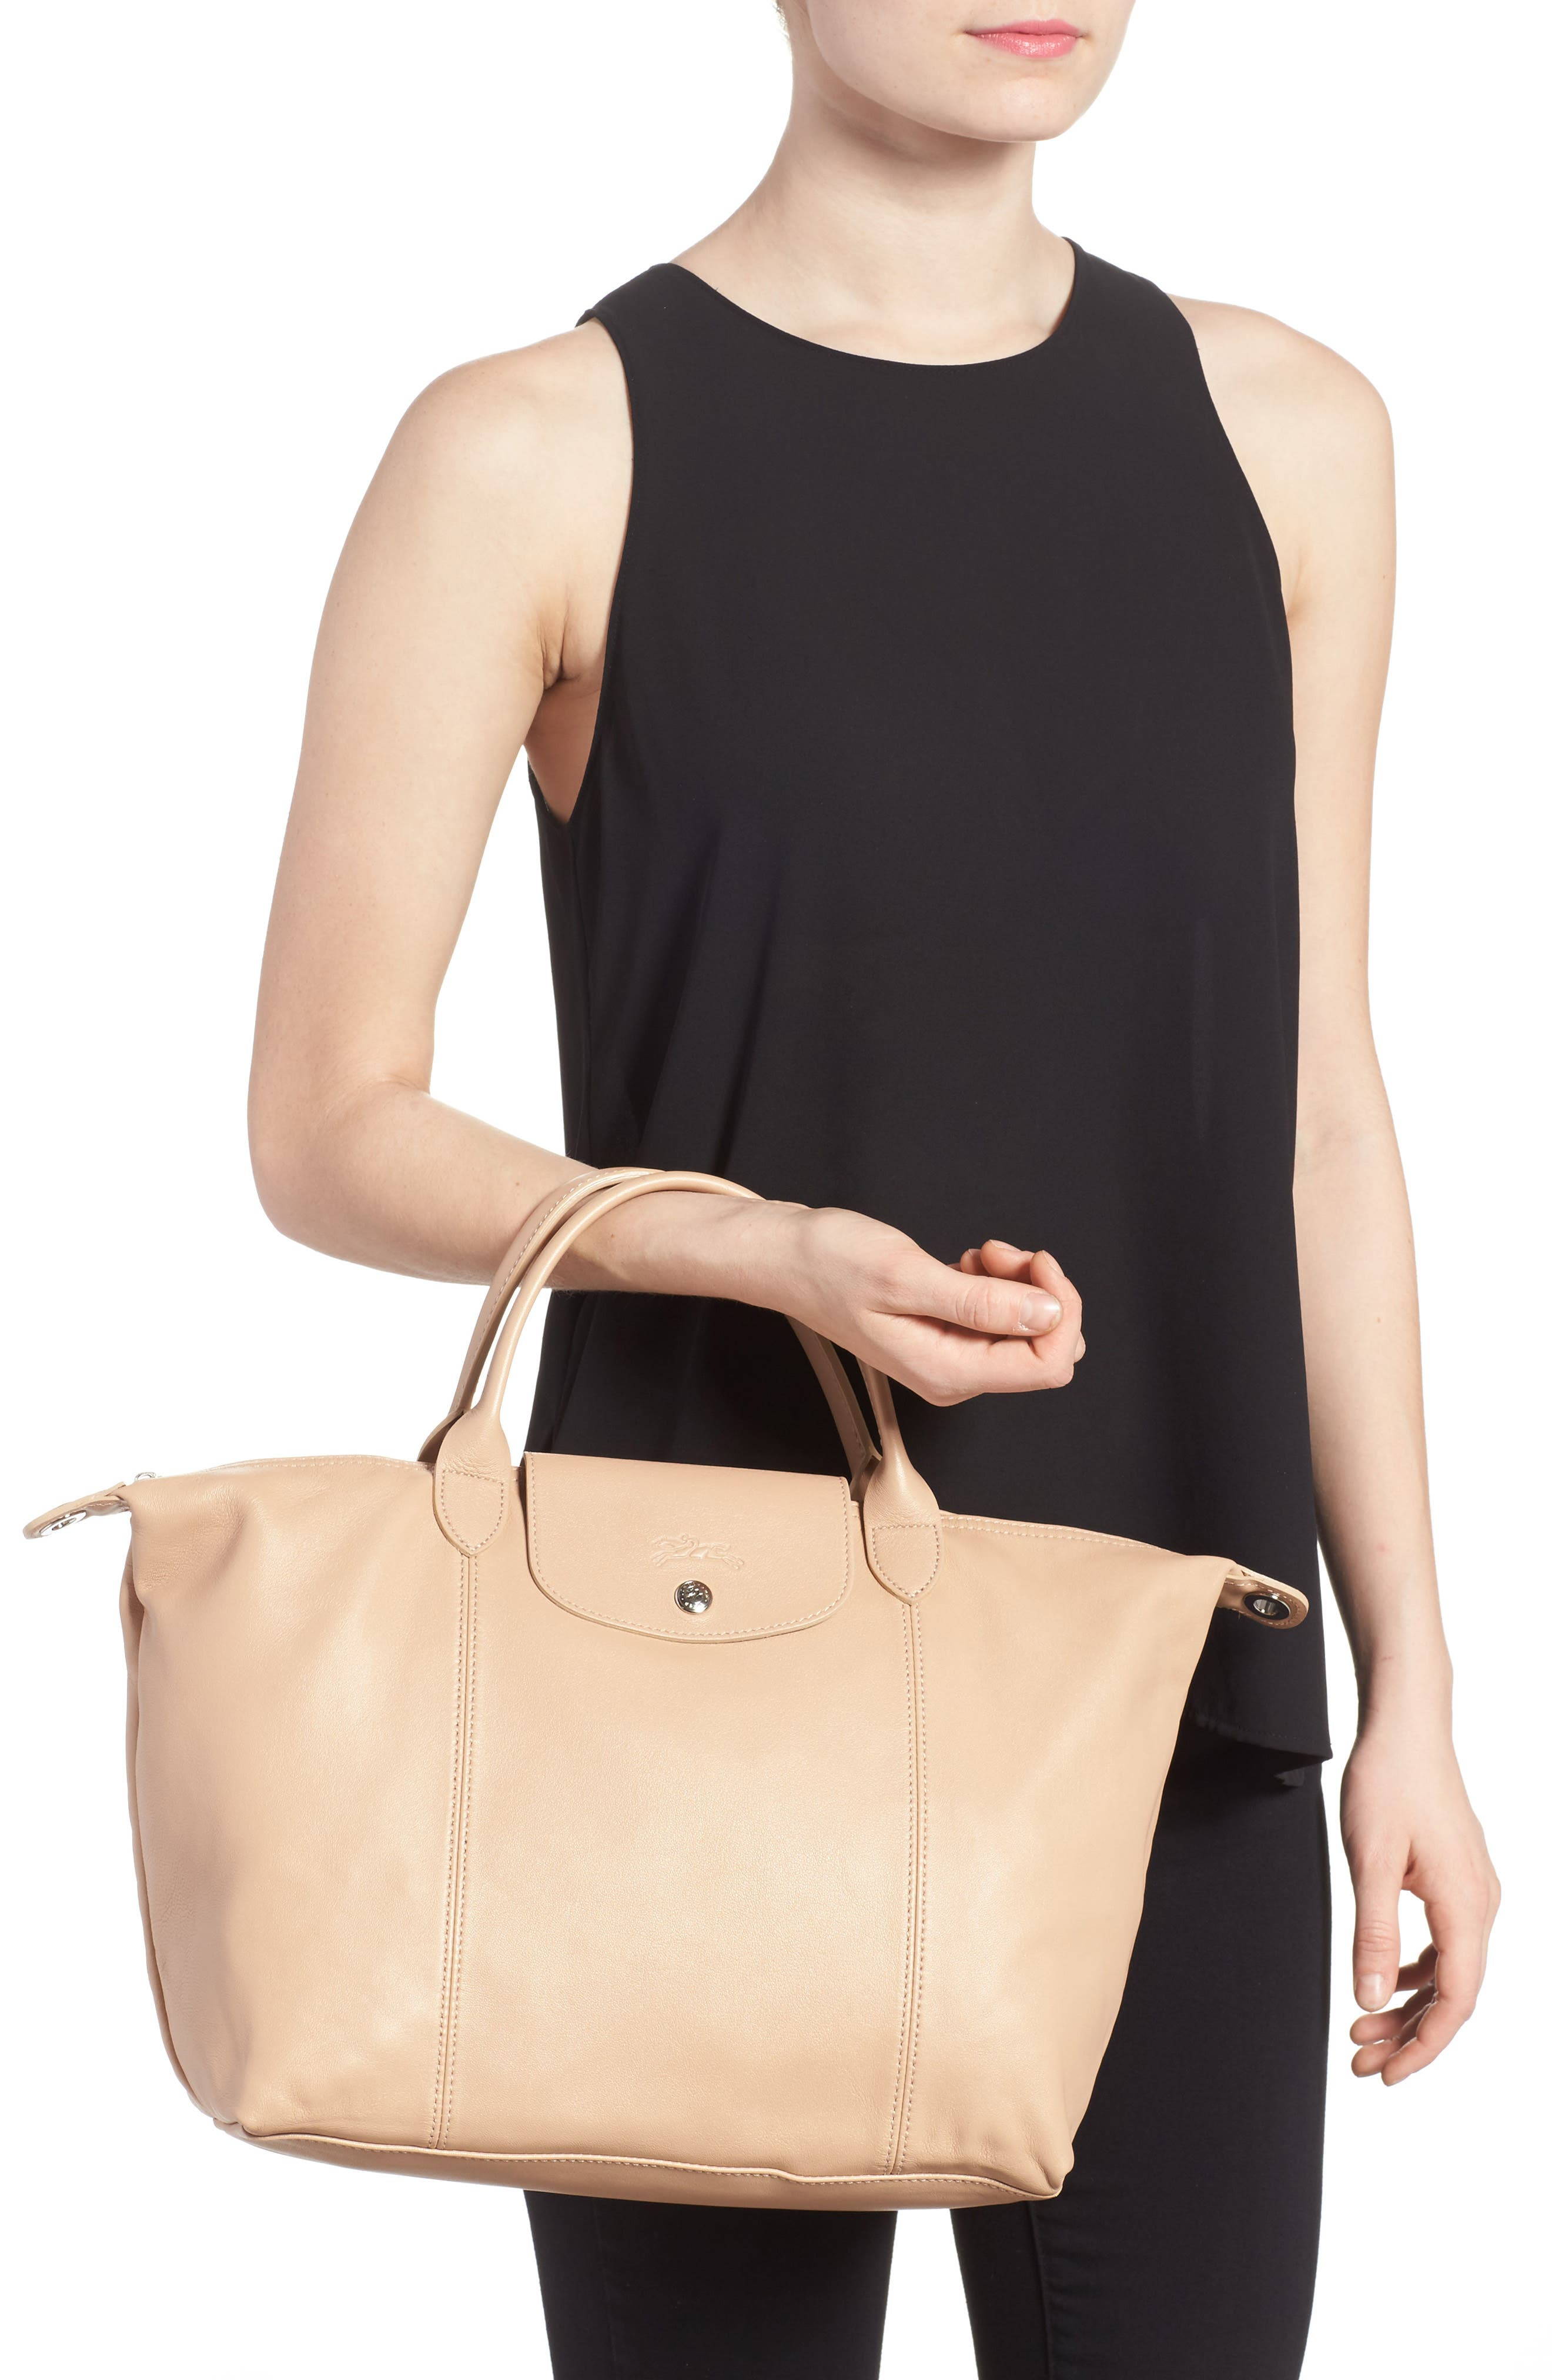 Medium 'Le Pliage Cuir' Leather Top Handle Tote,                             Alternate thumbnail 37, color,